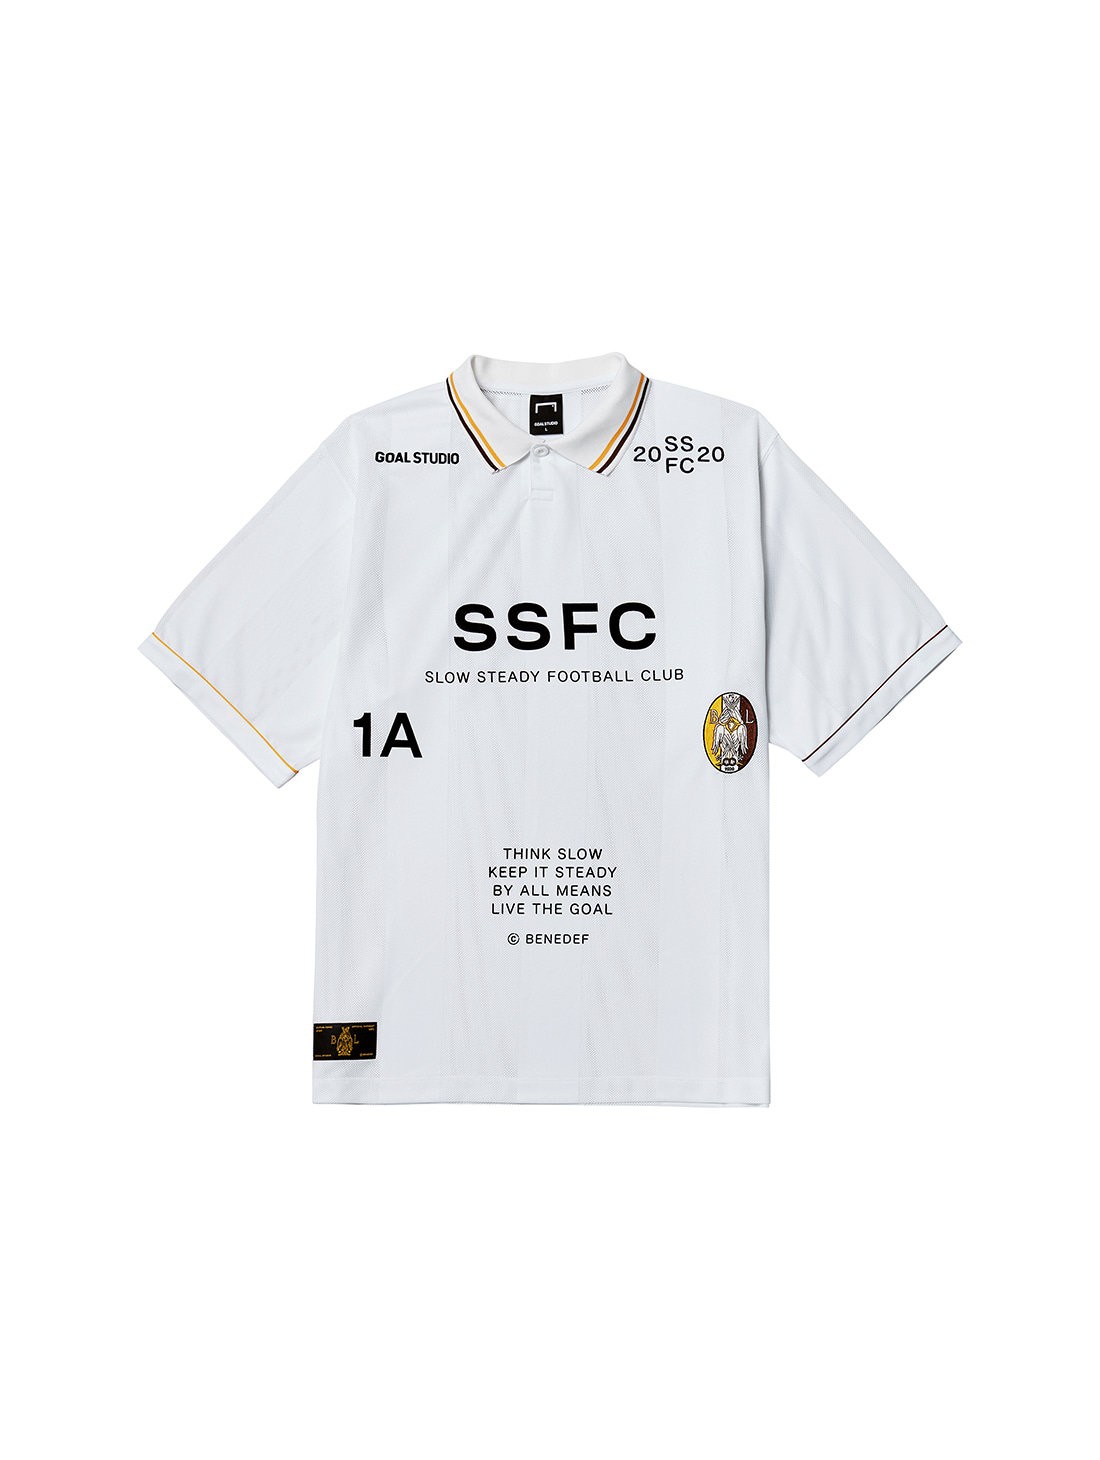 GOALSTUDIO SSFC UNIFORM SHORT SLEEVE - WHITE(A)